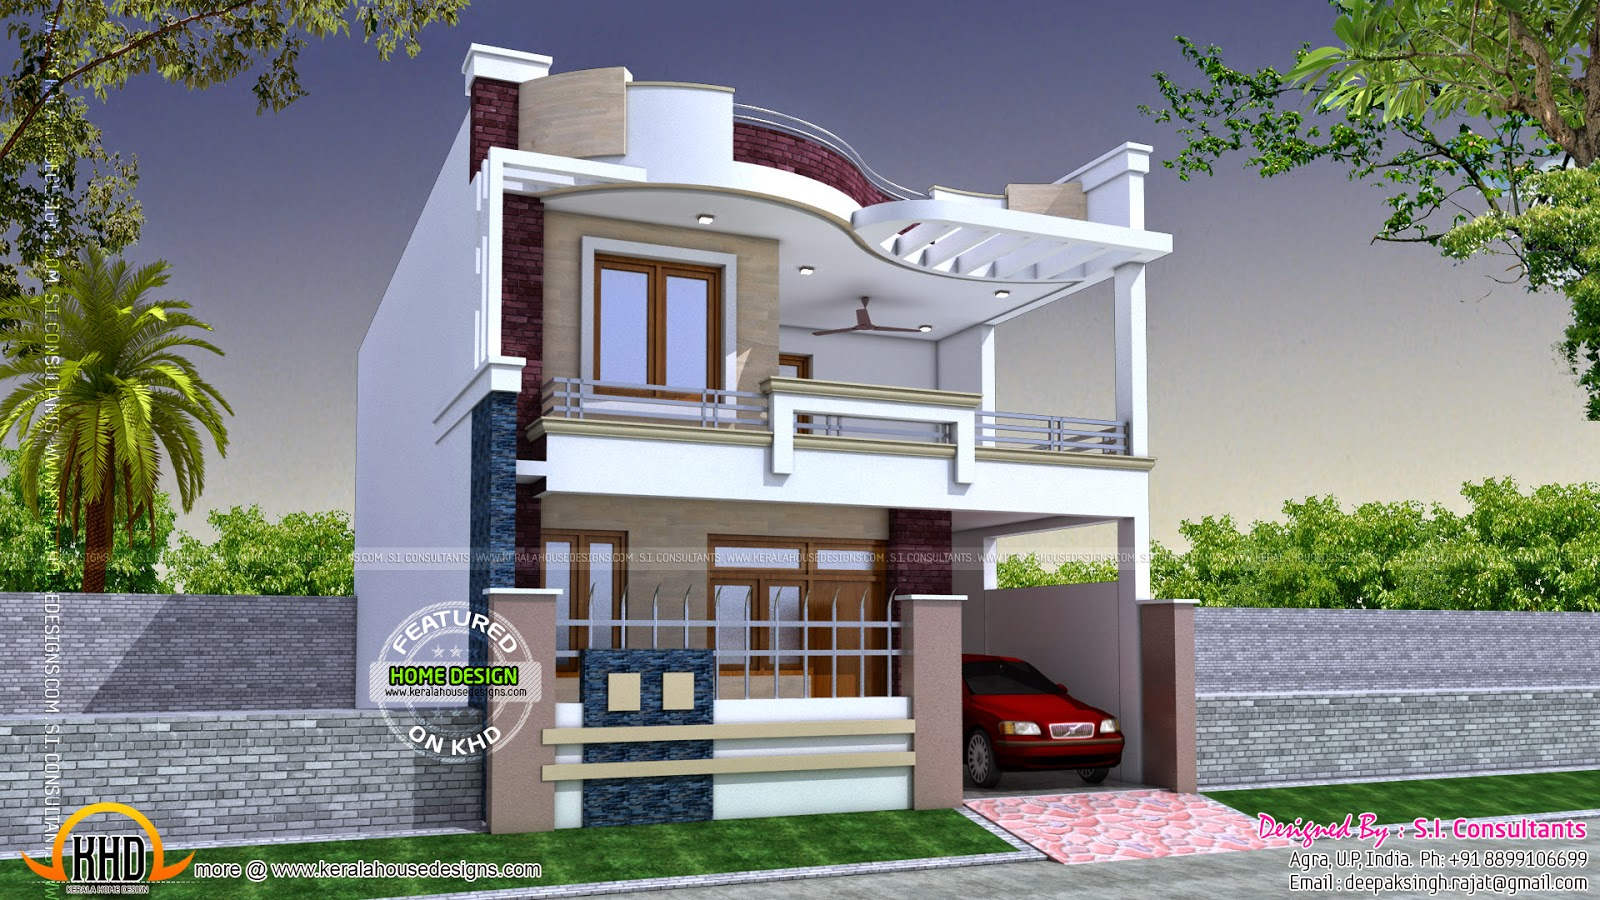 Modern indian home design kerala home design and floor plans for House plans with photos